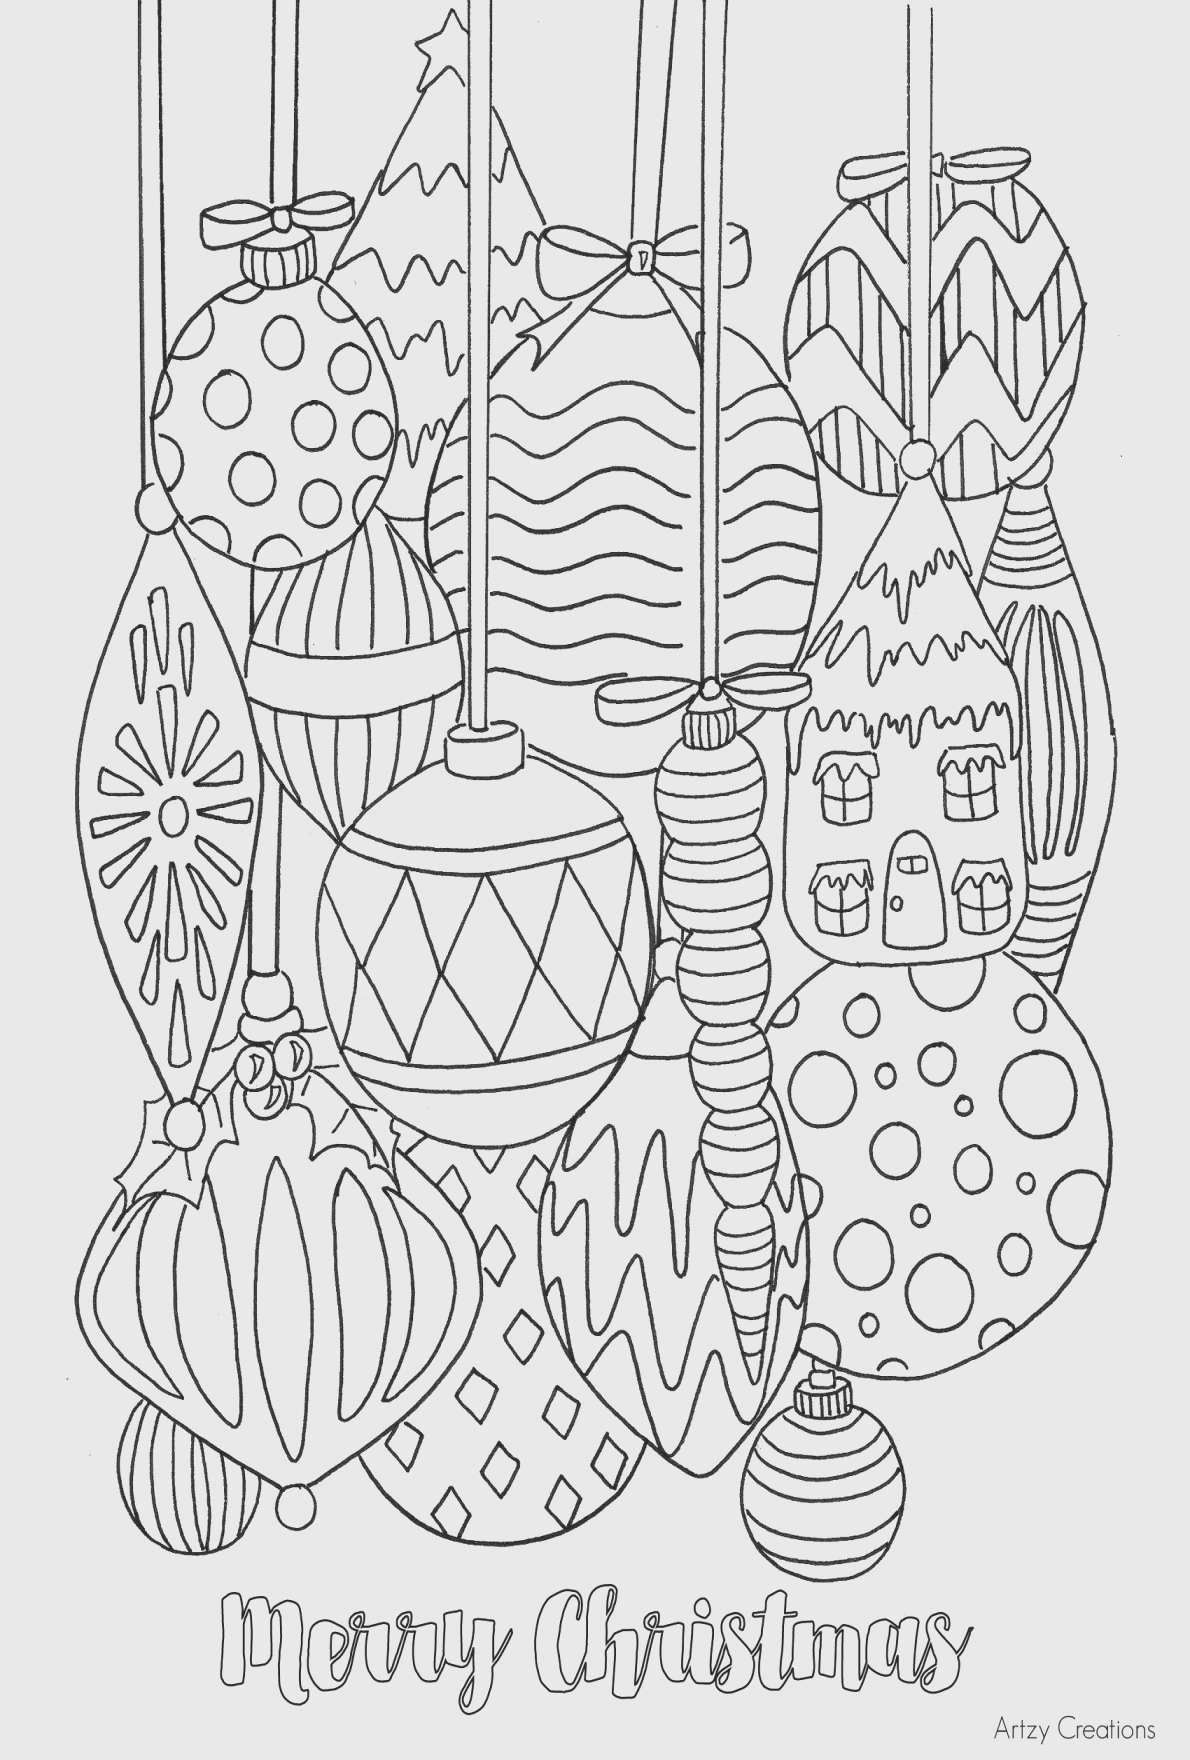 Christmas Vacation Coloring Pages Luxury Simple Fun Coloring Page Printable Christmas Coloring Pages Free Christmas Coloring Pages Christmas Tree Coloring Page